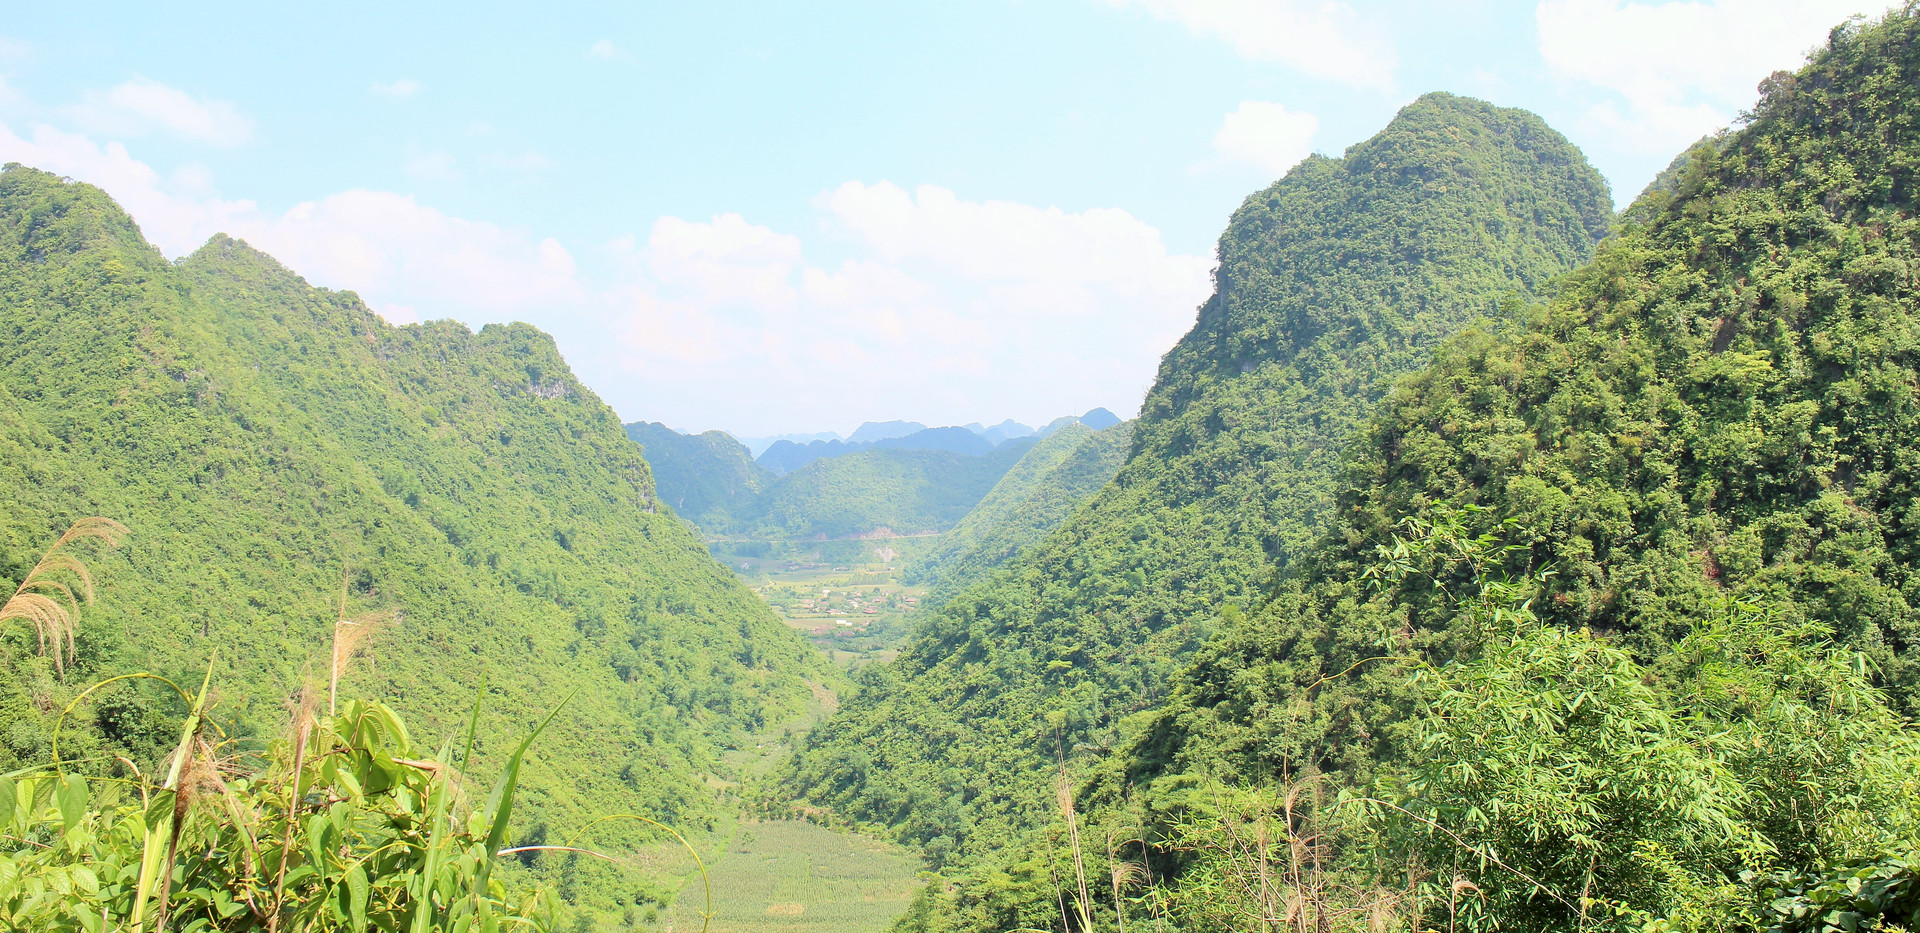 Wonderful scense in Bac Son